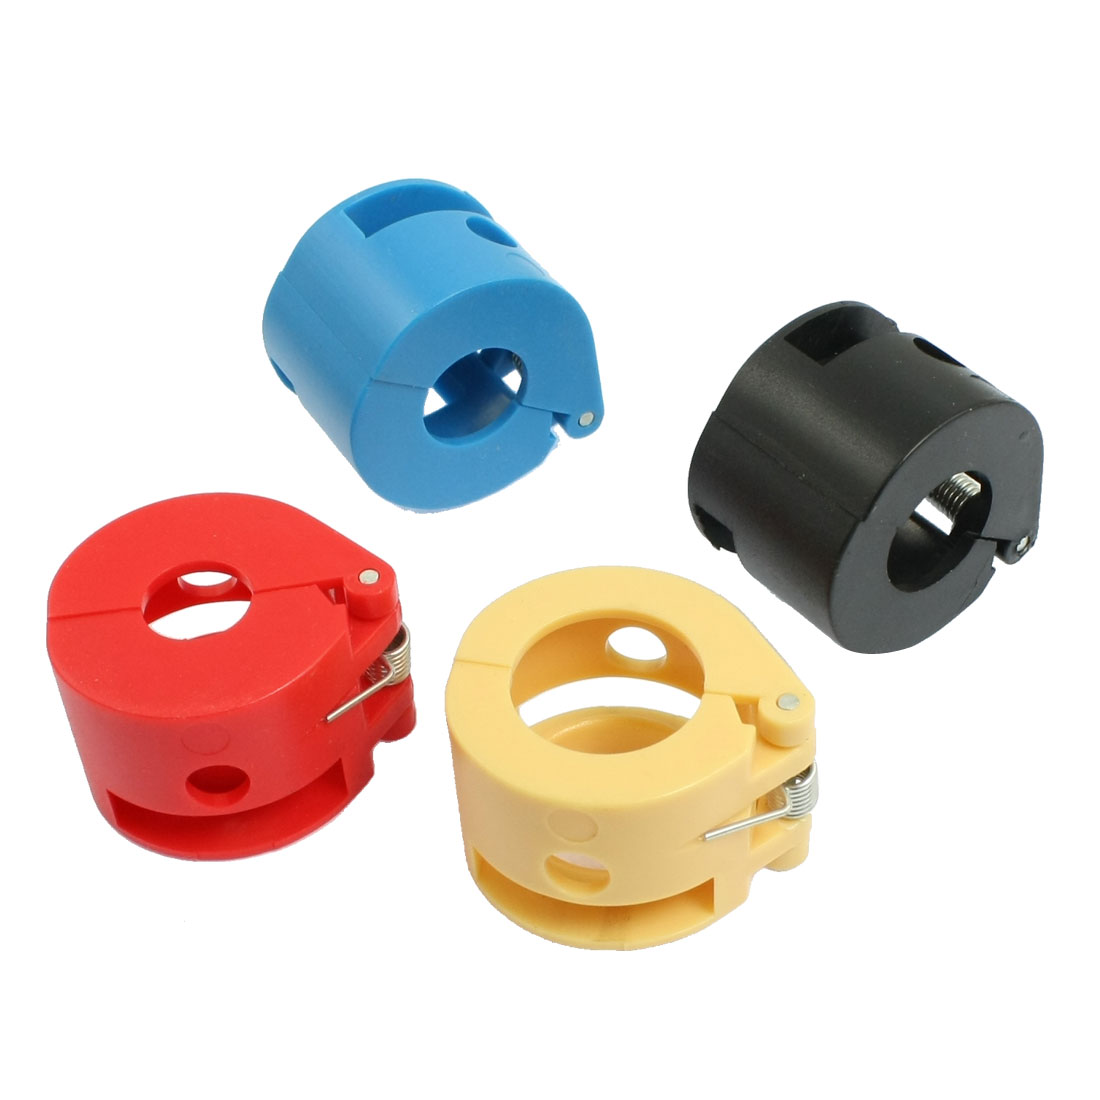 4 Pcs Assorted Color 18mm Diameter Cable Wiring Tubing Clamp Fastener